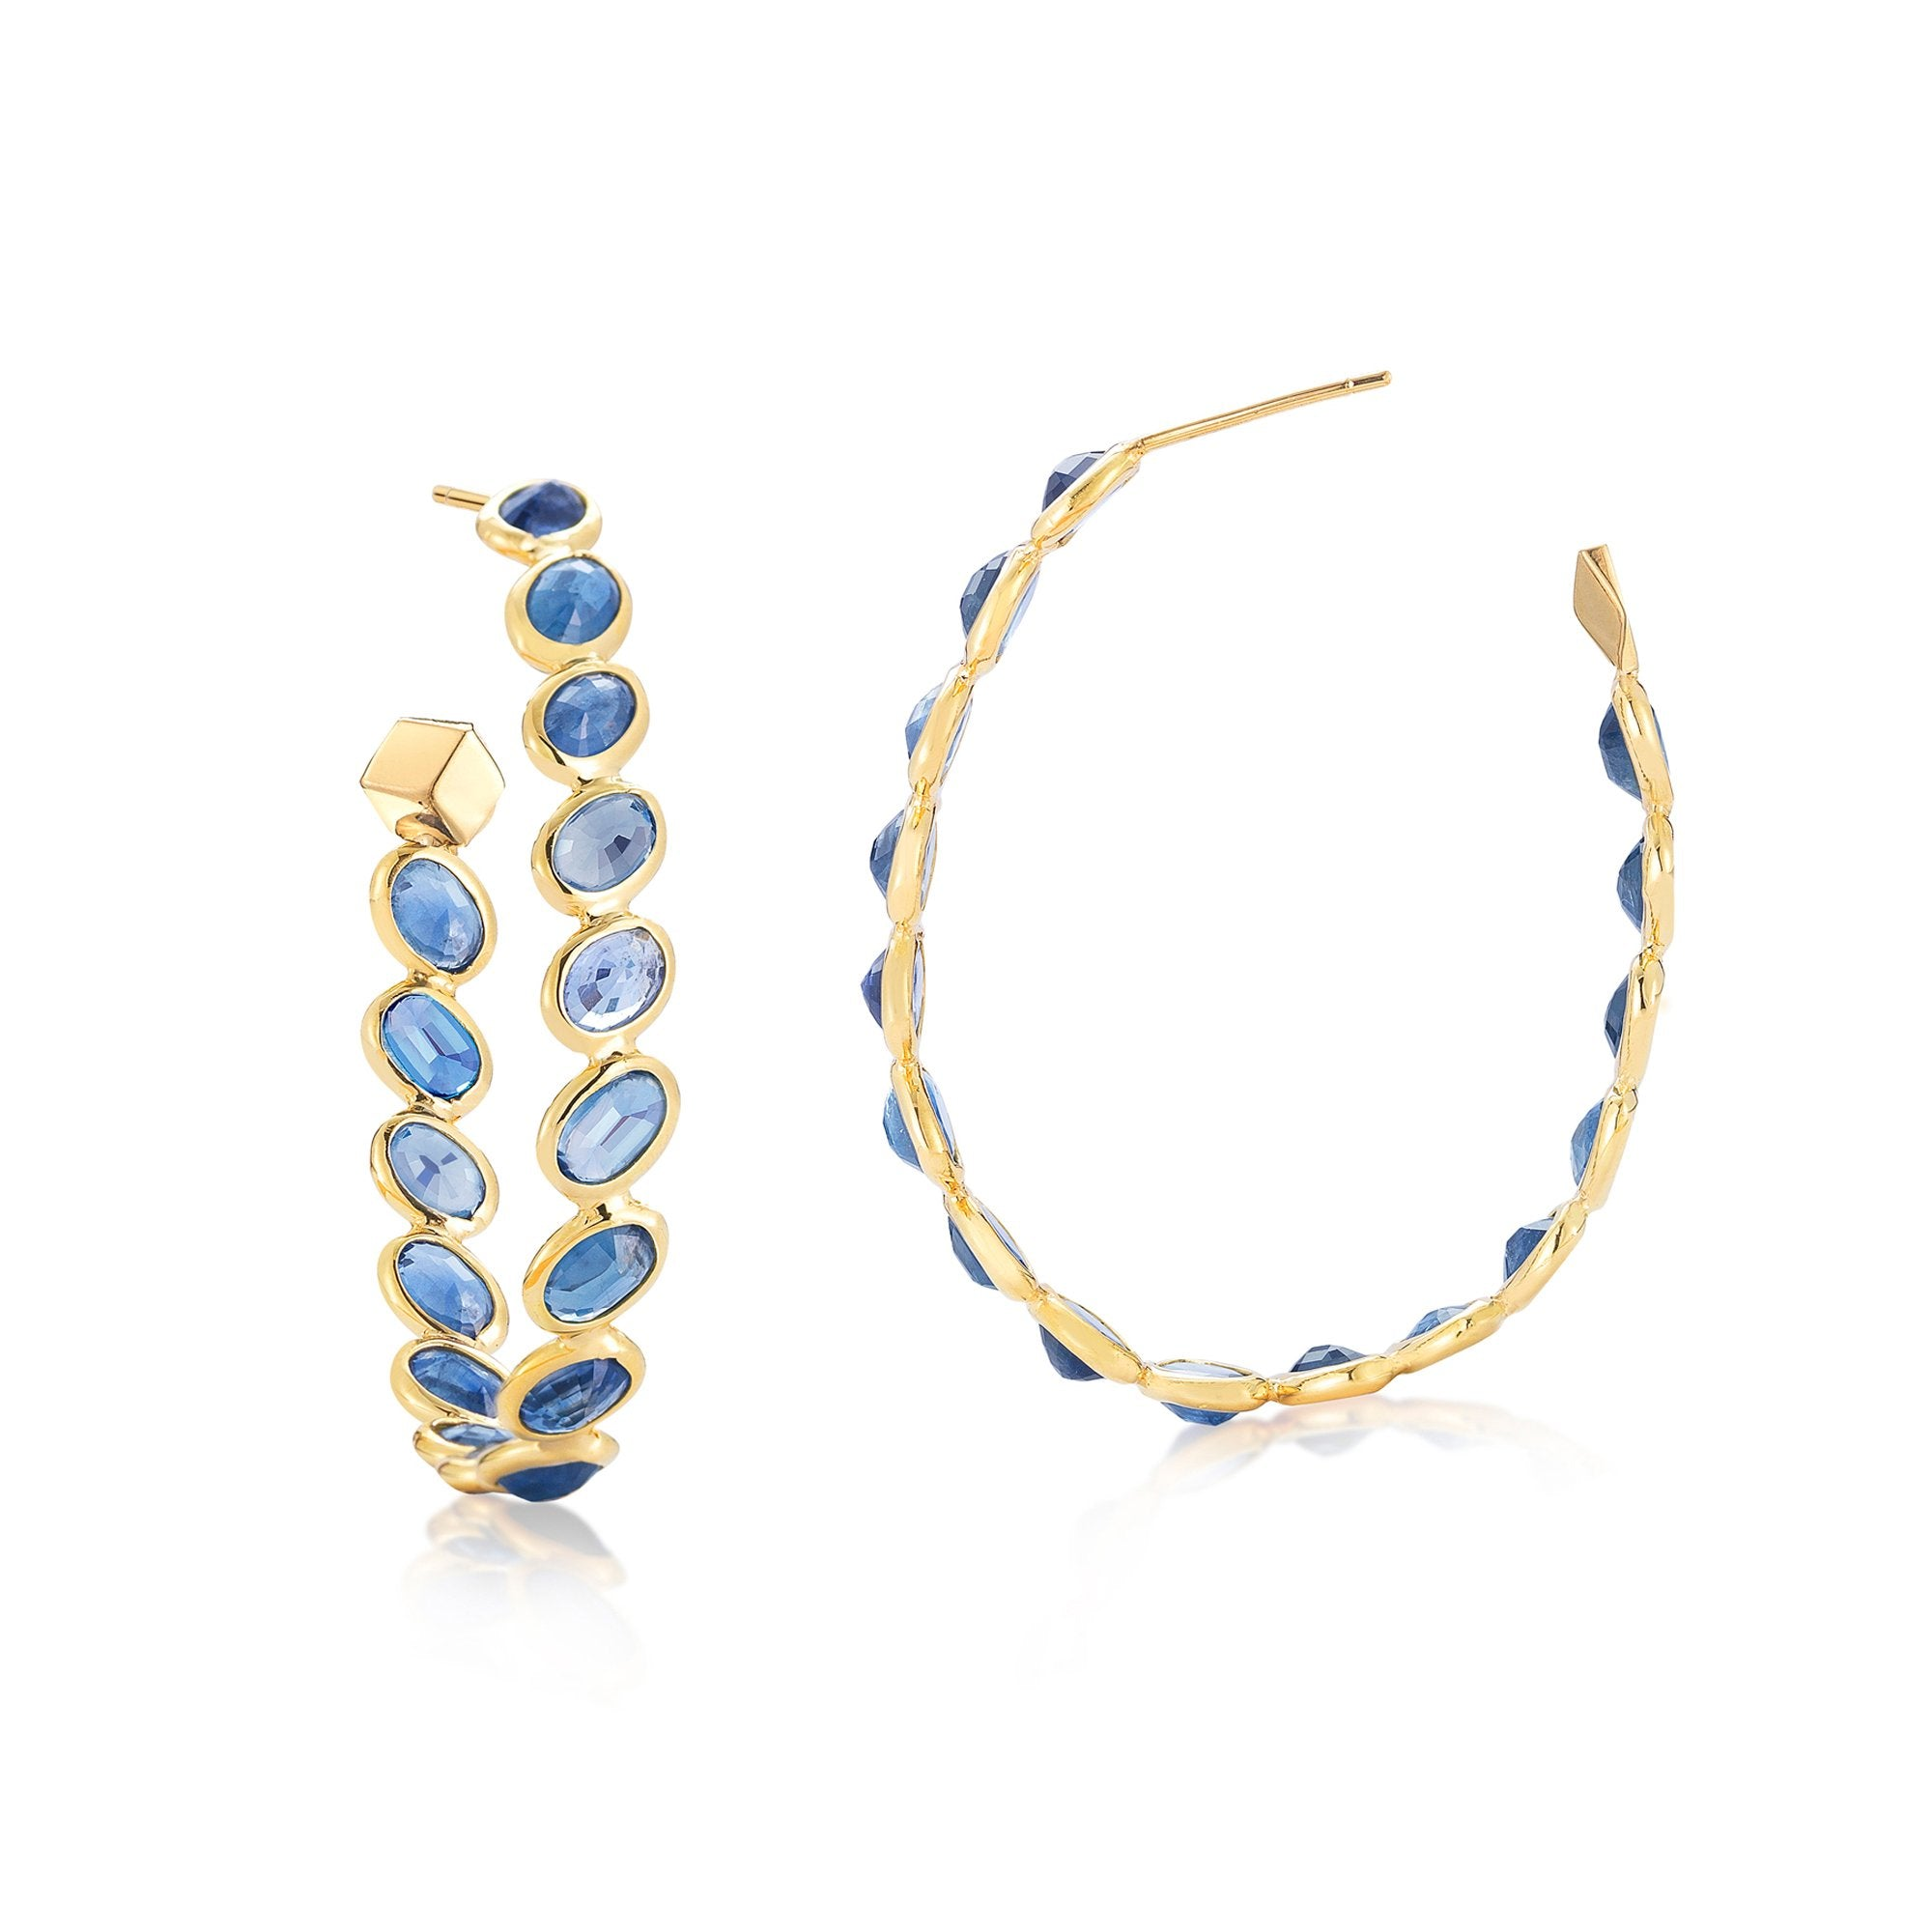 Blue Sapphire 'Ombre' Hoop Earrings, Grande - Paolo Costagli - 1